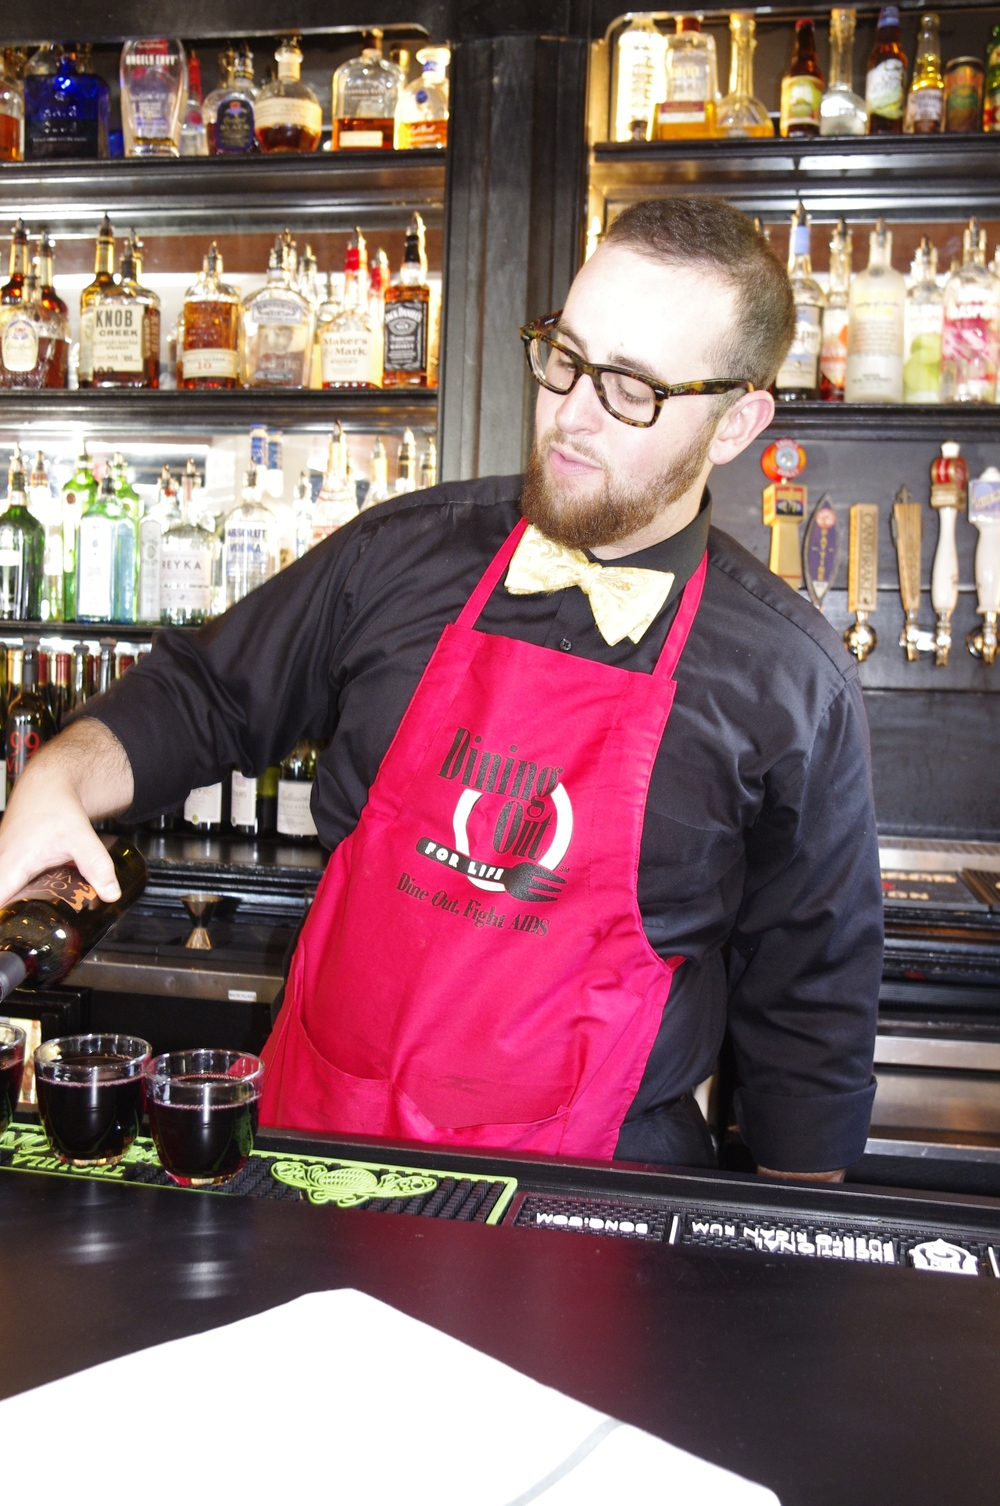 Bartender with apron.jpg